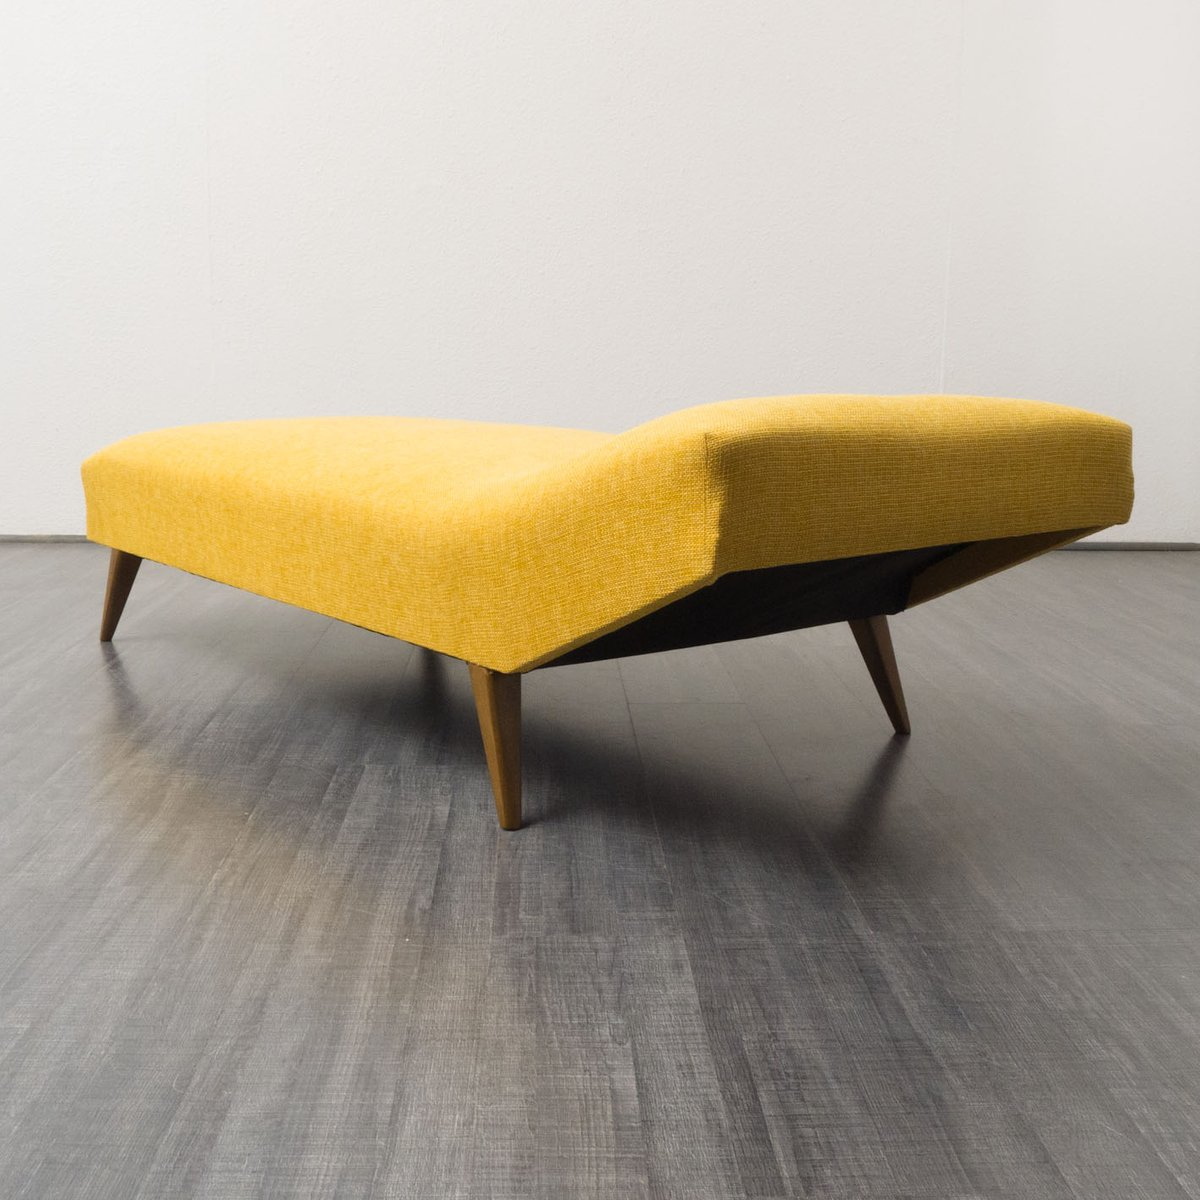 Recamiere chaise lounge 1950s for sale at pamono for 1950 chaise lounge